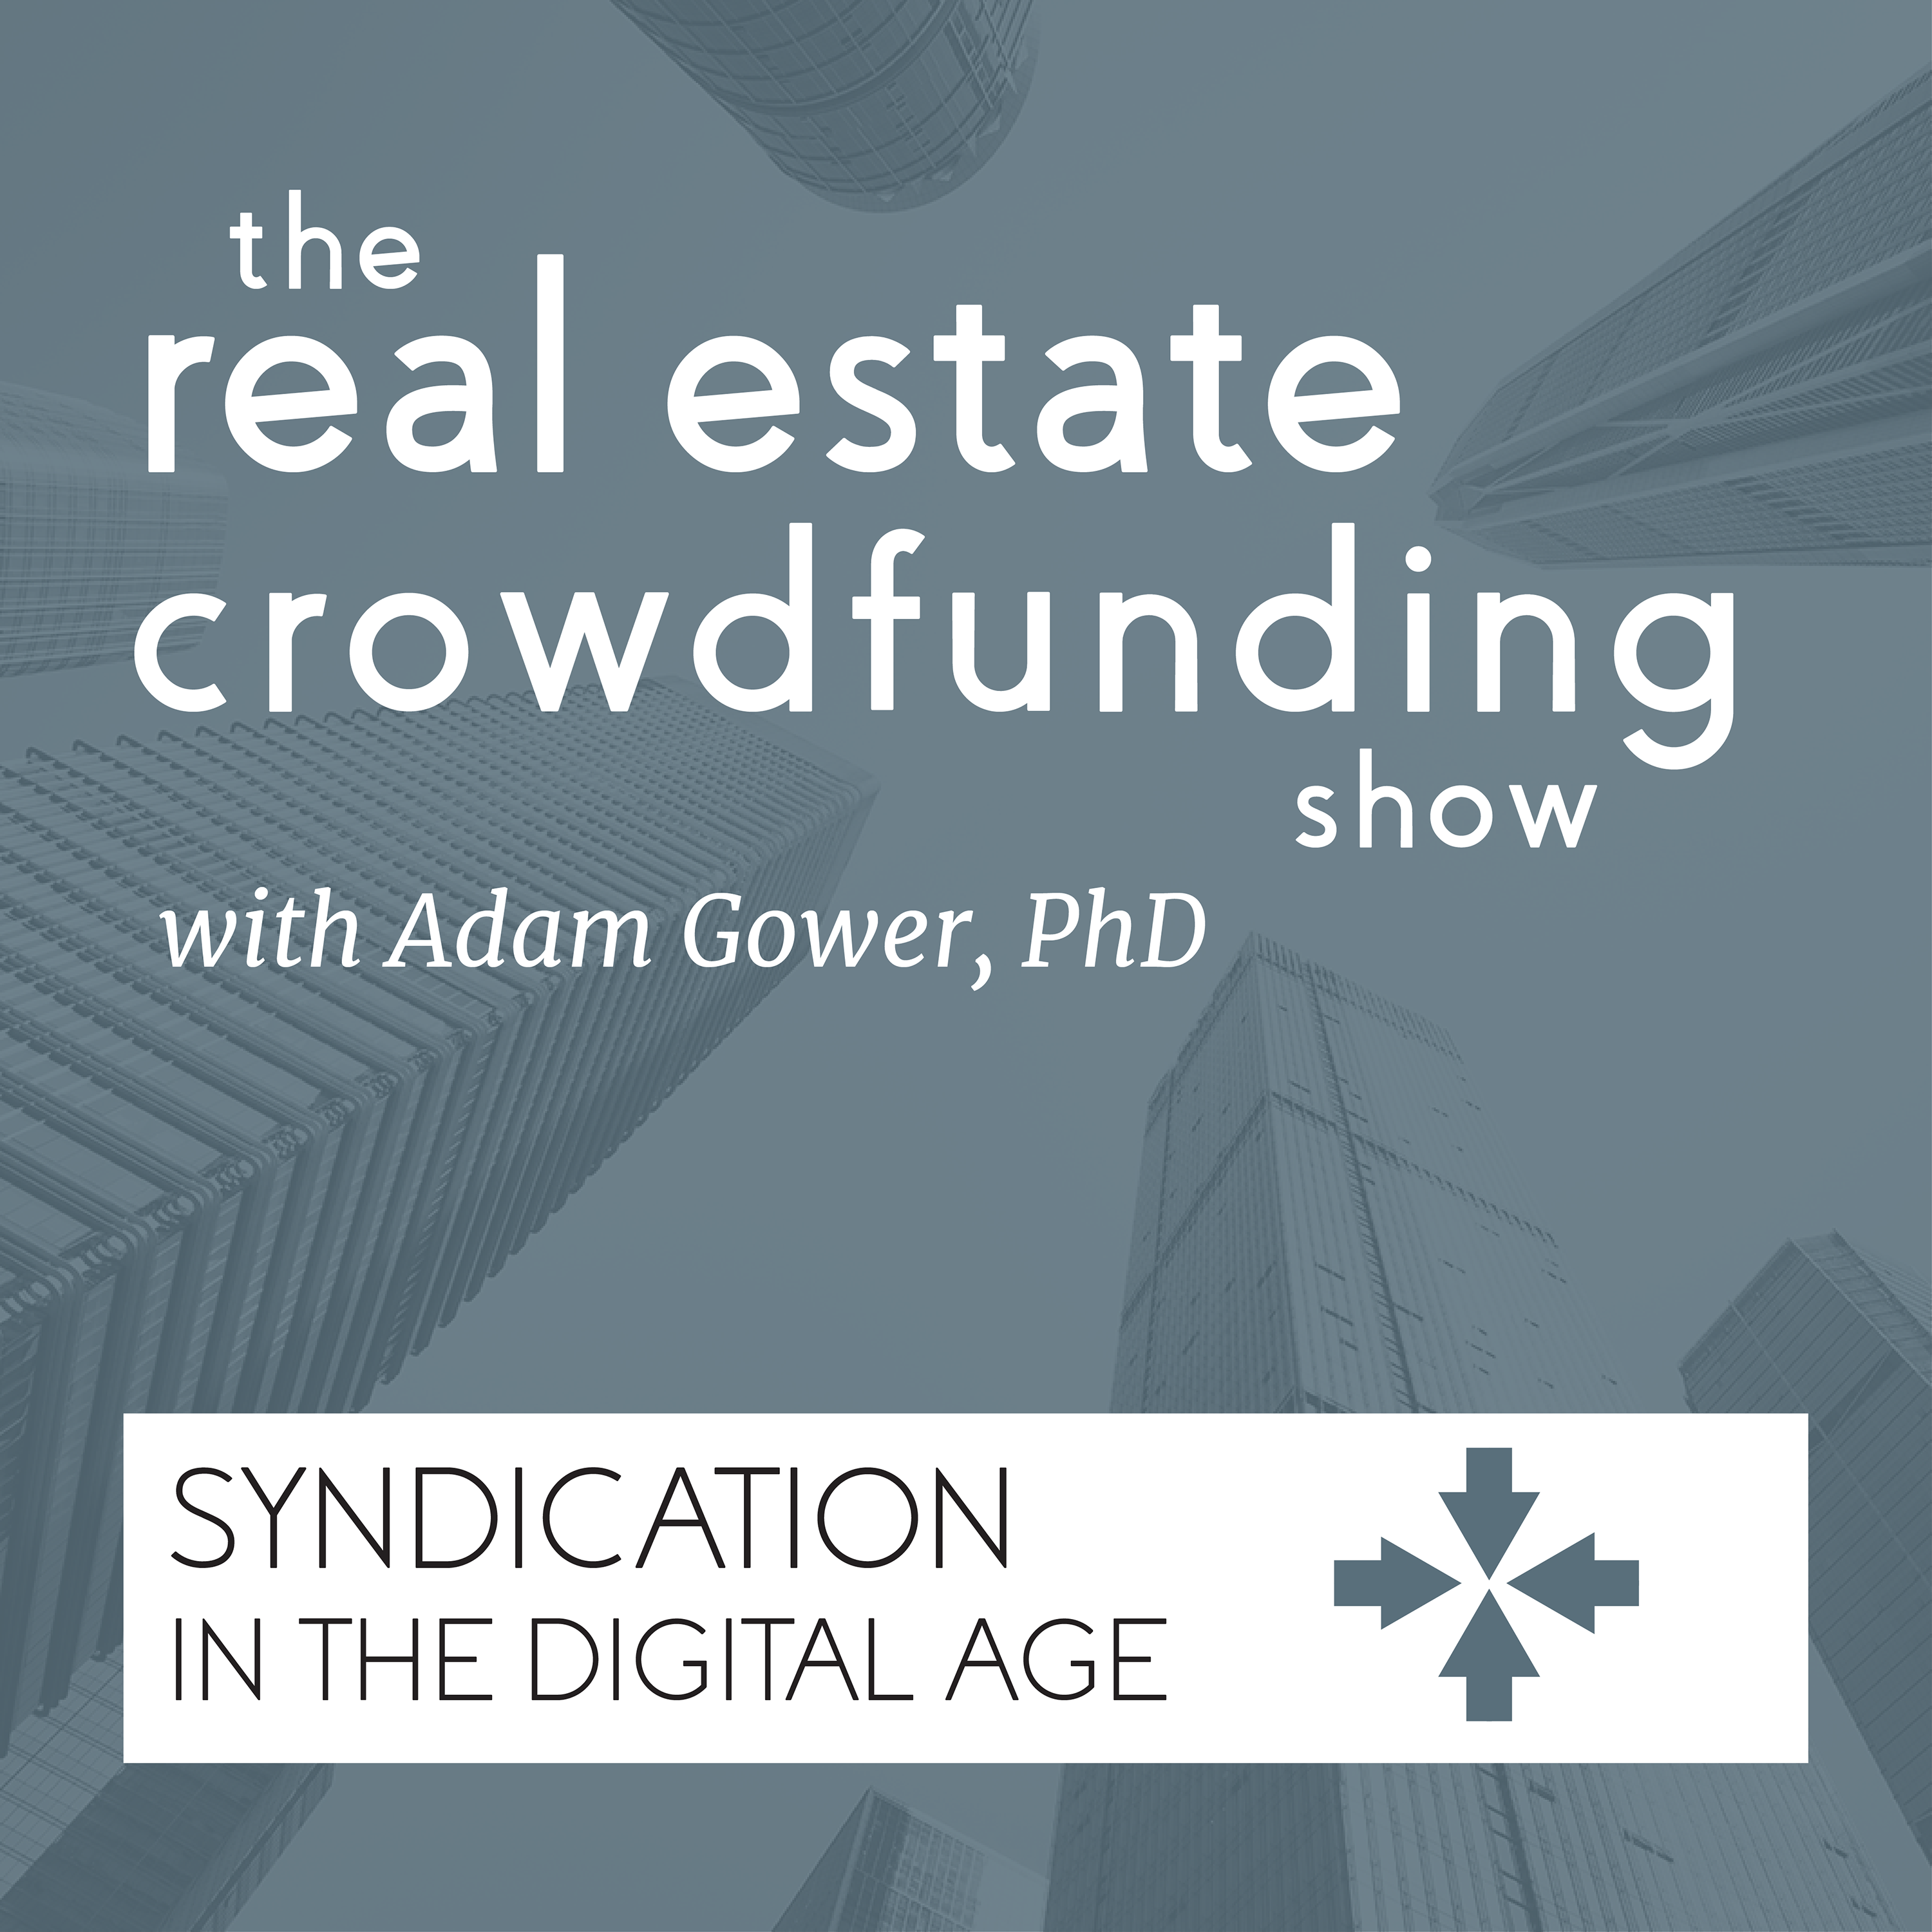 The Real Estate Crowdfunding Show - Syndication in the Digital Age